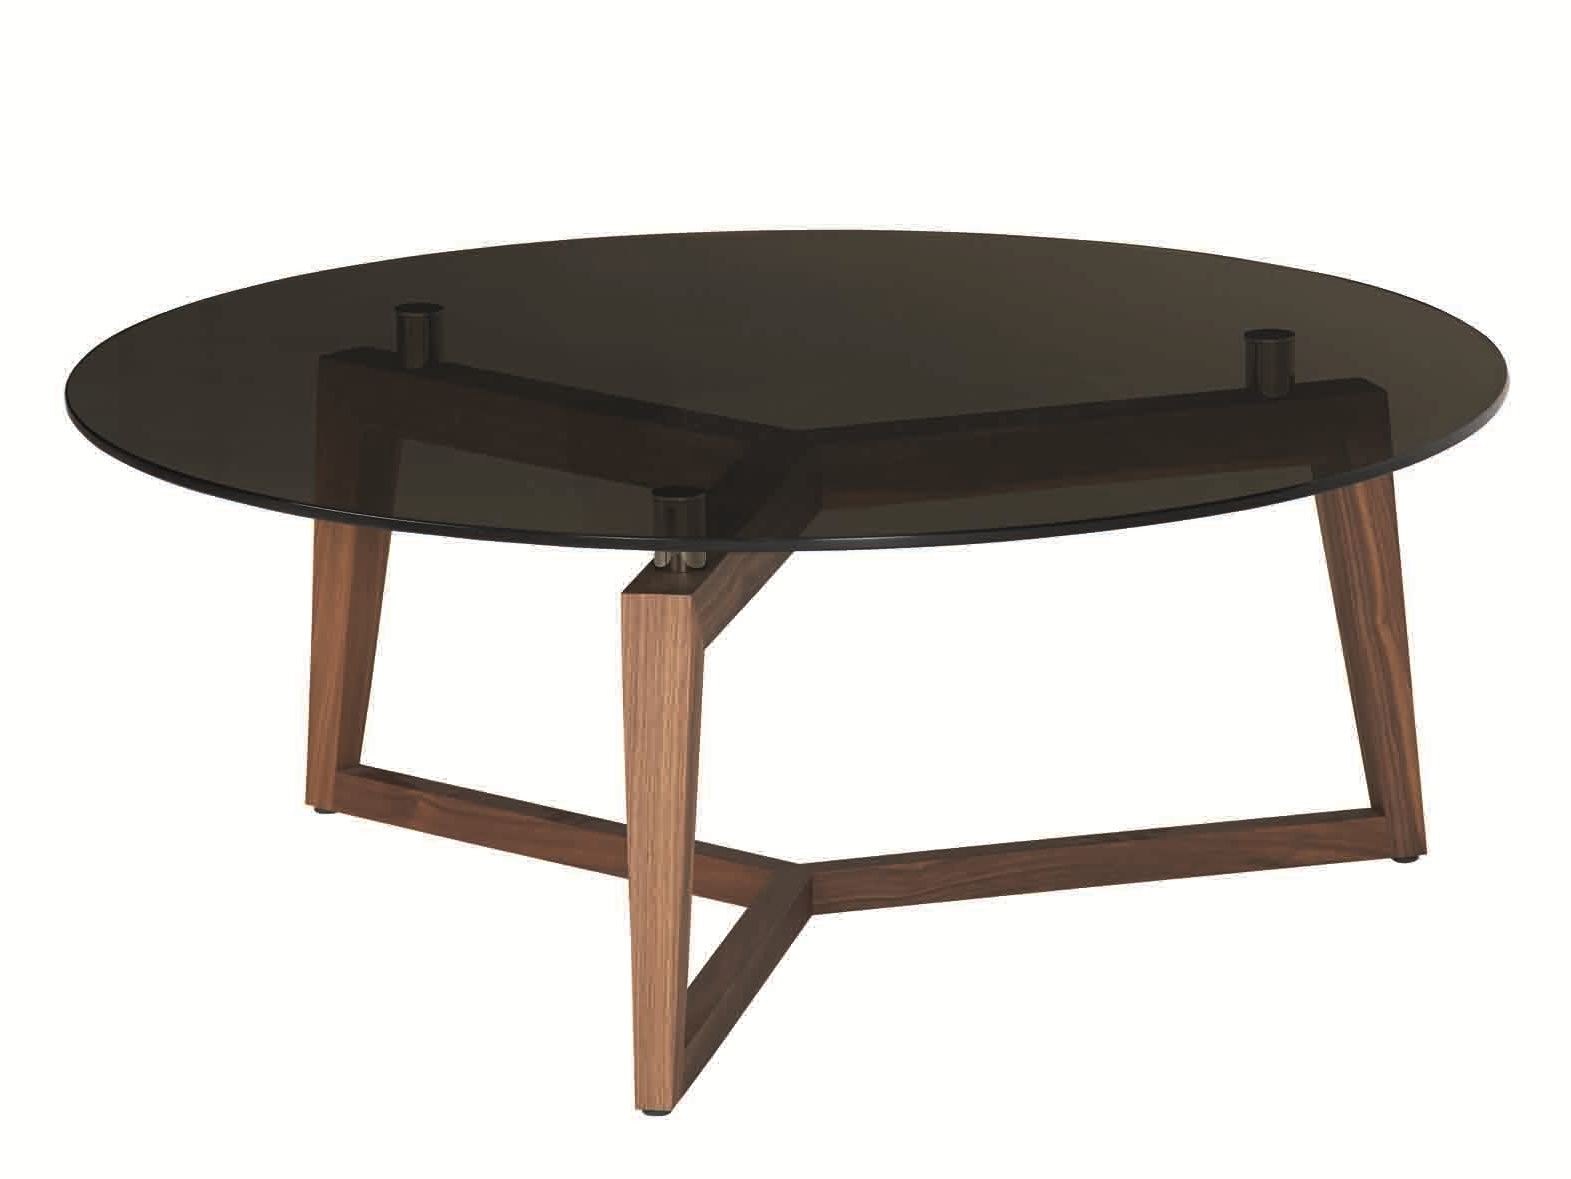 Tables Basses De Salon Pliantes Table Basse Ovale De Salon Zen By Selva Design Tiziano